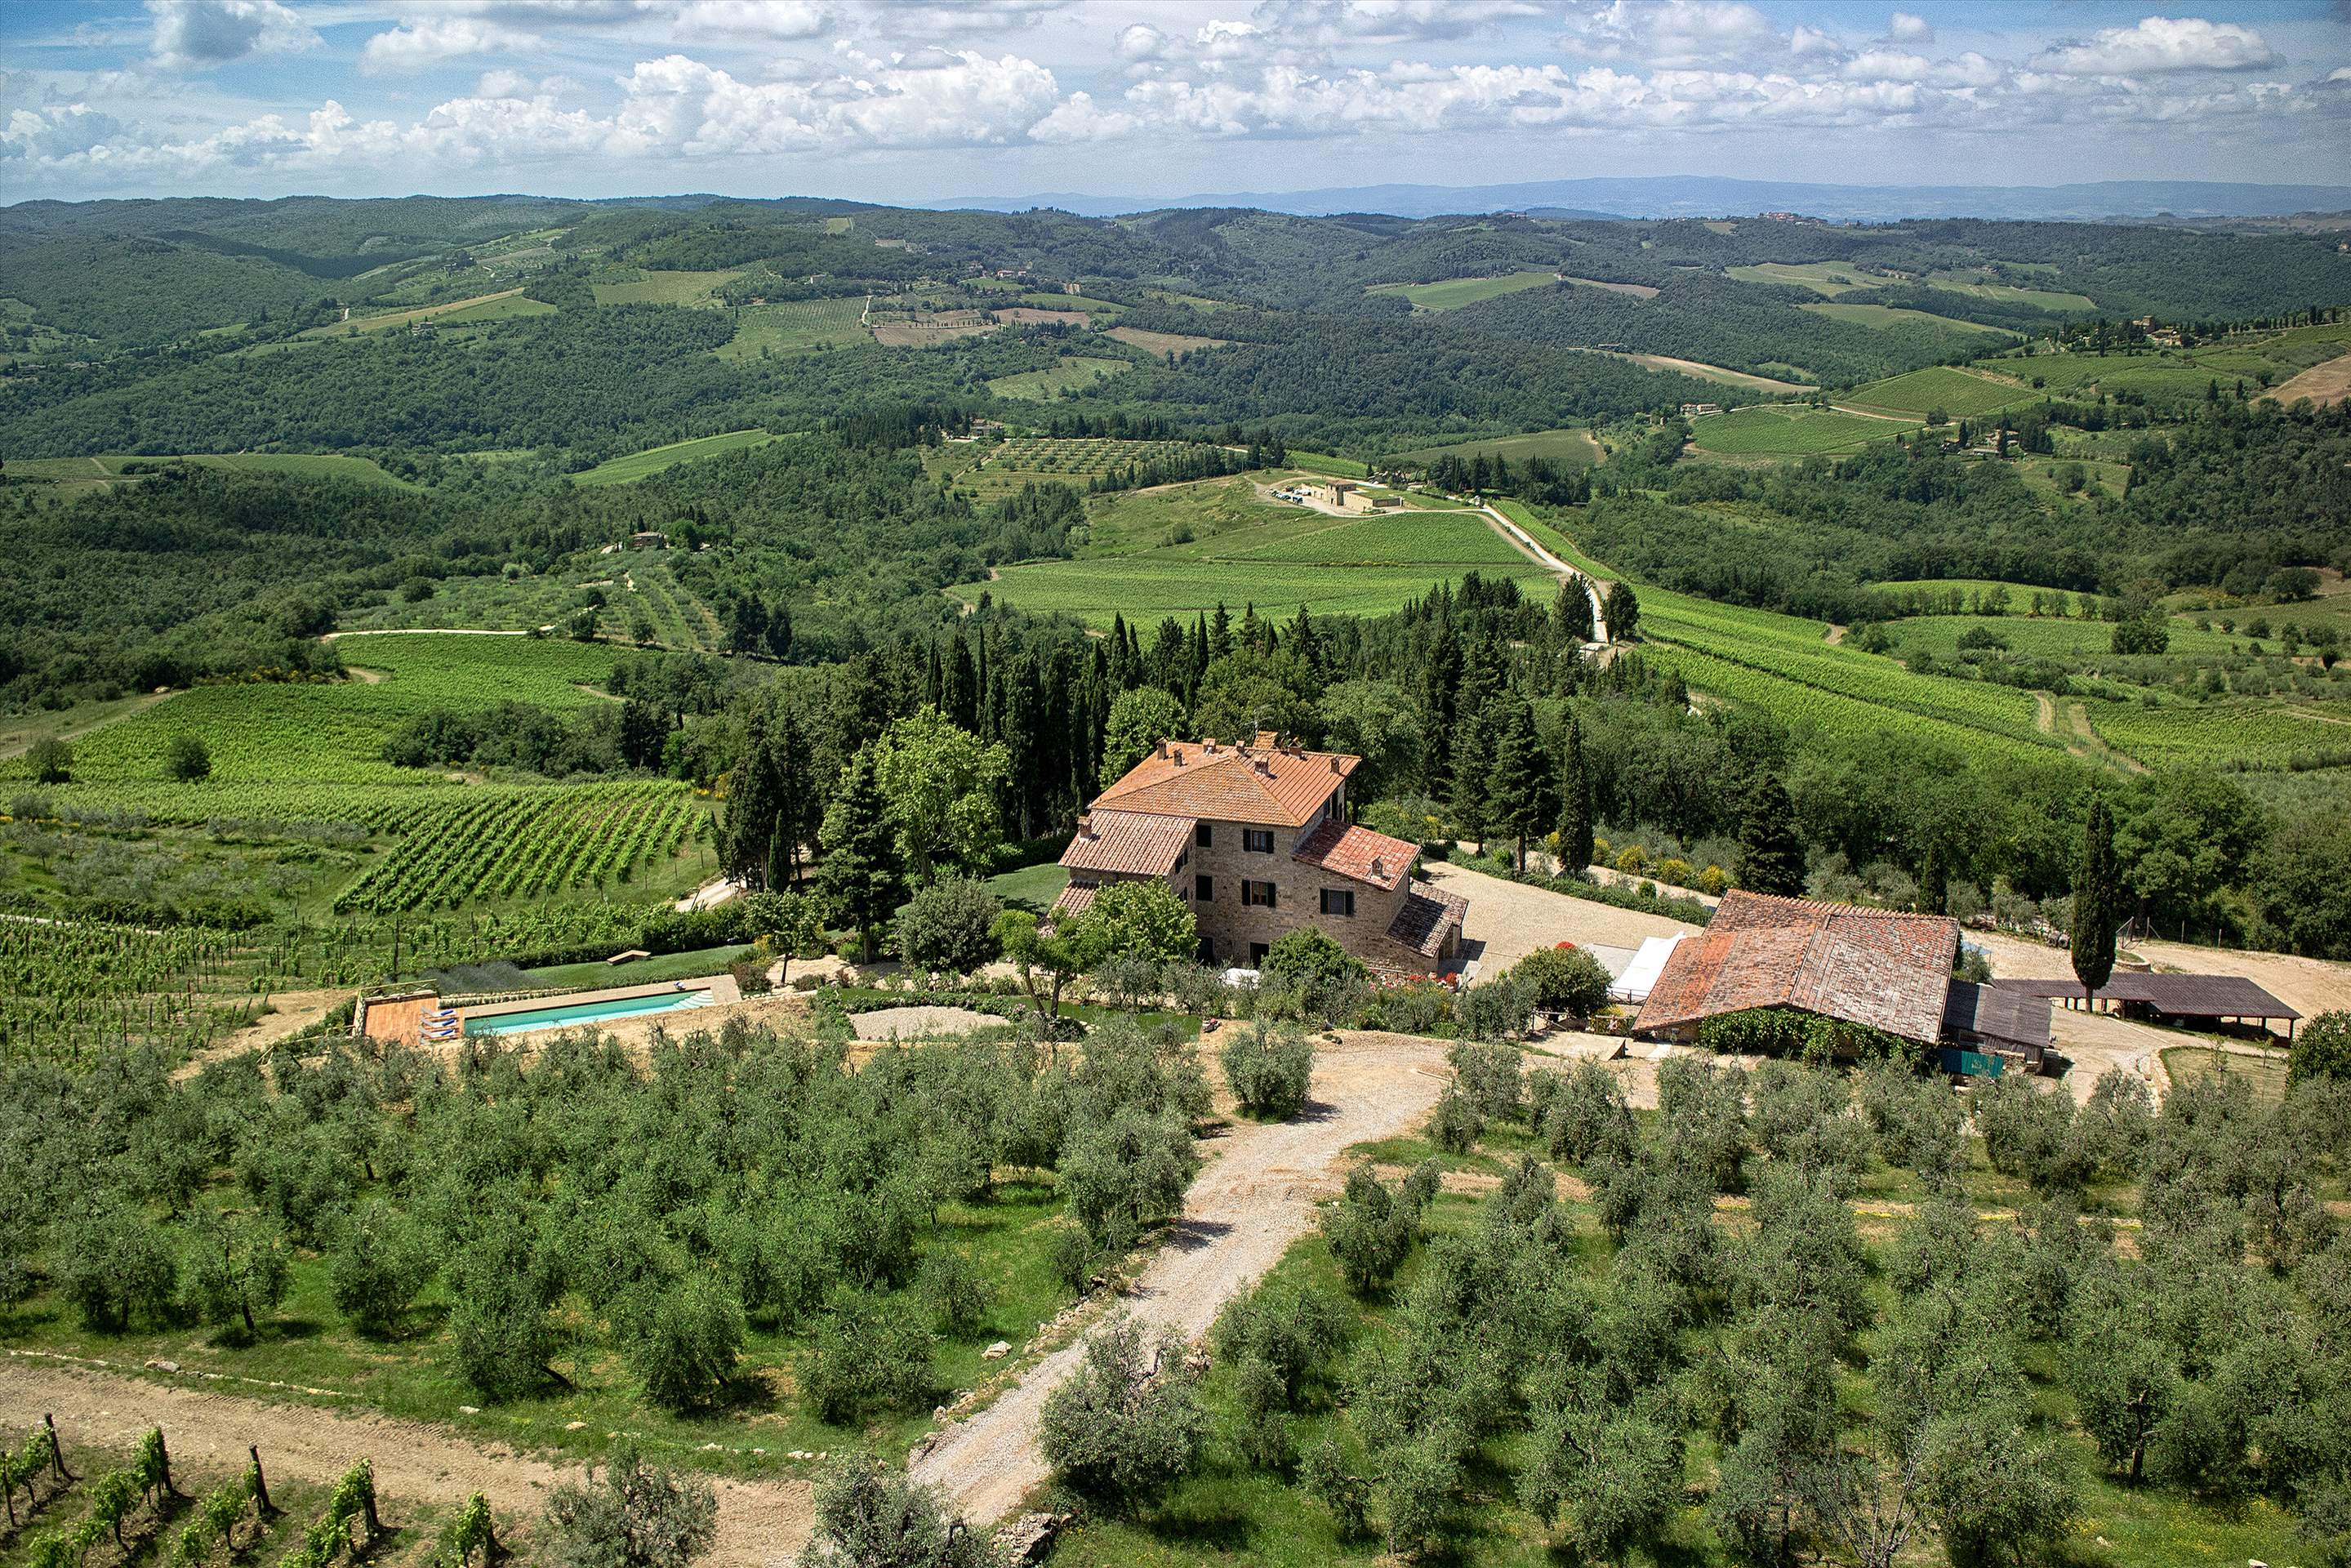 Villa La Valetta, 1 Bed Apt Ulivo, 1 bedroom villa in Chianti & Countryside, Tuscany Photo #11